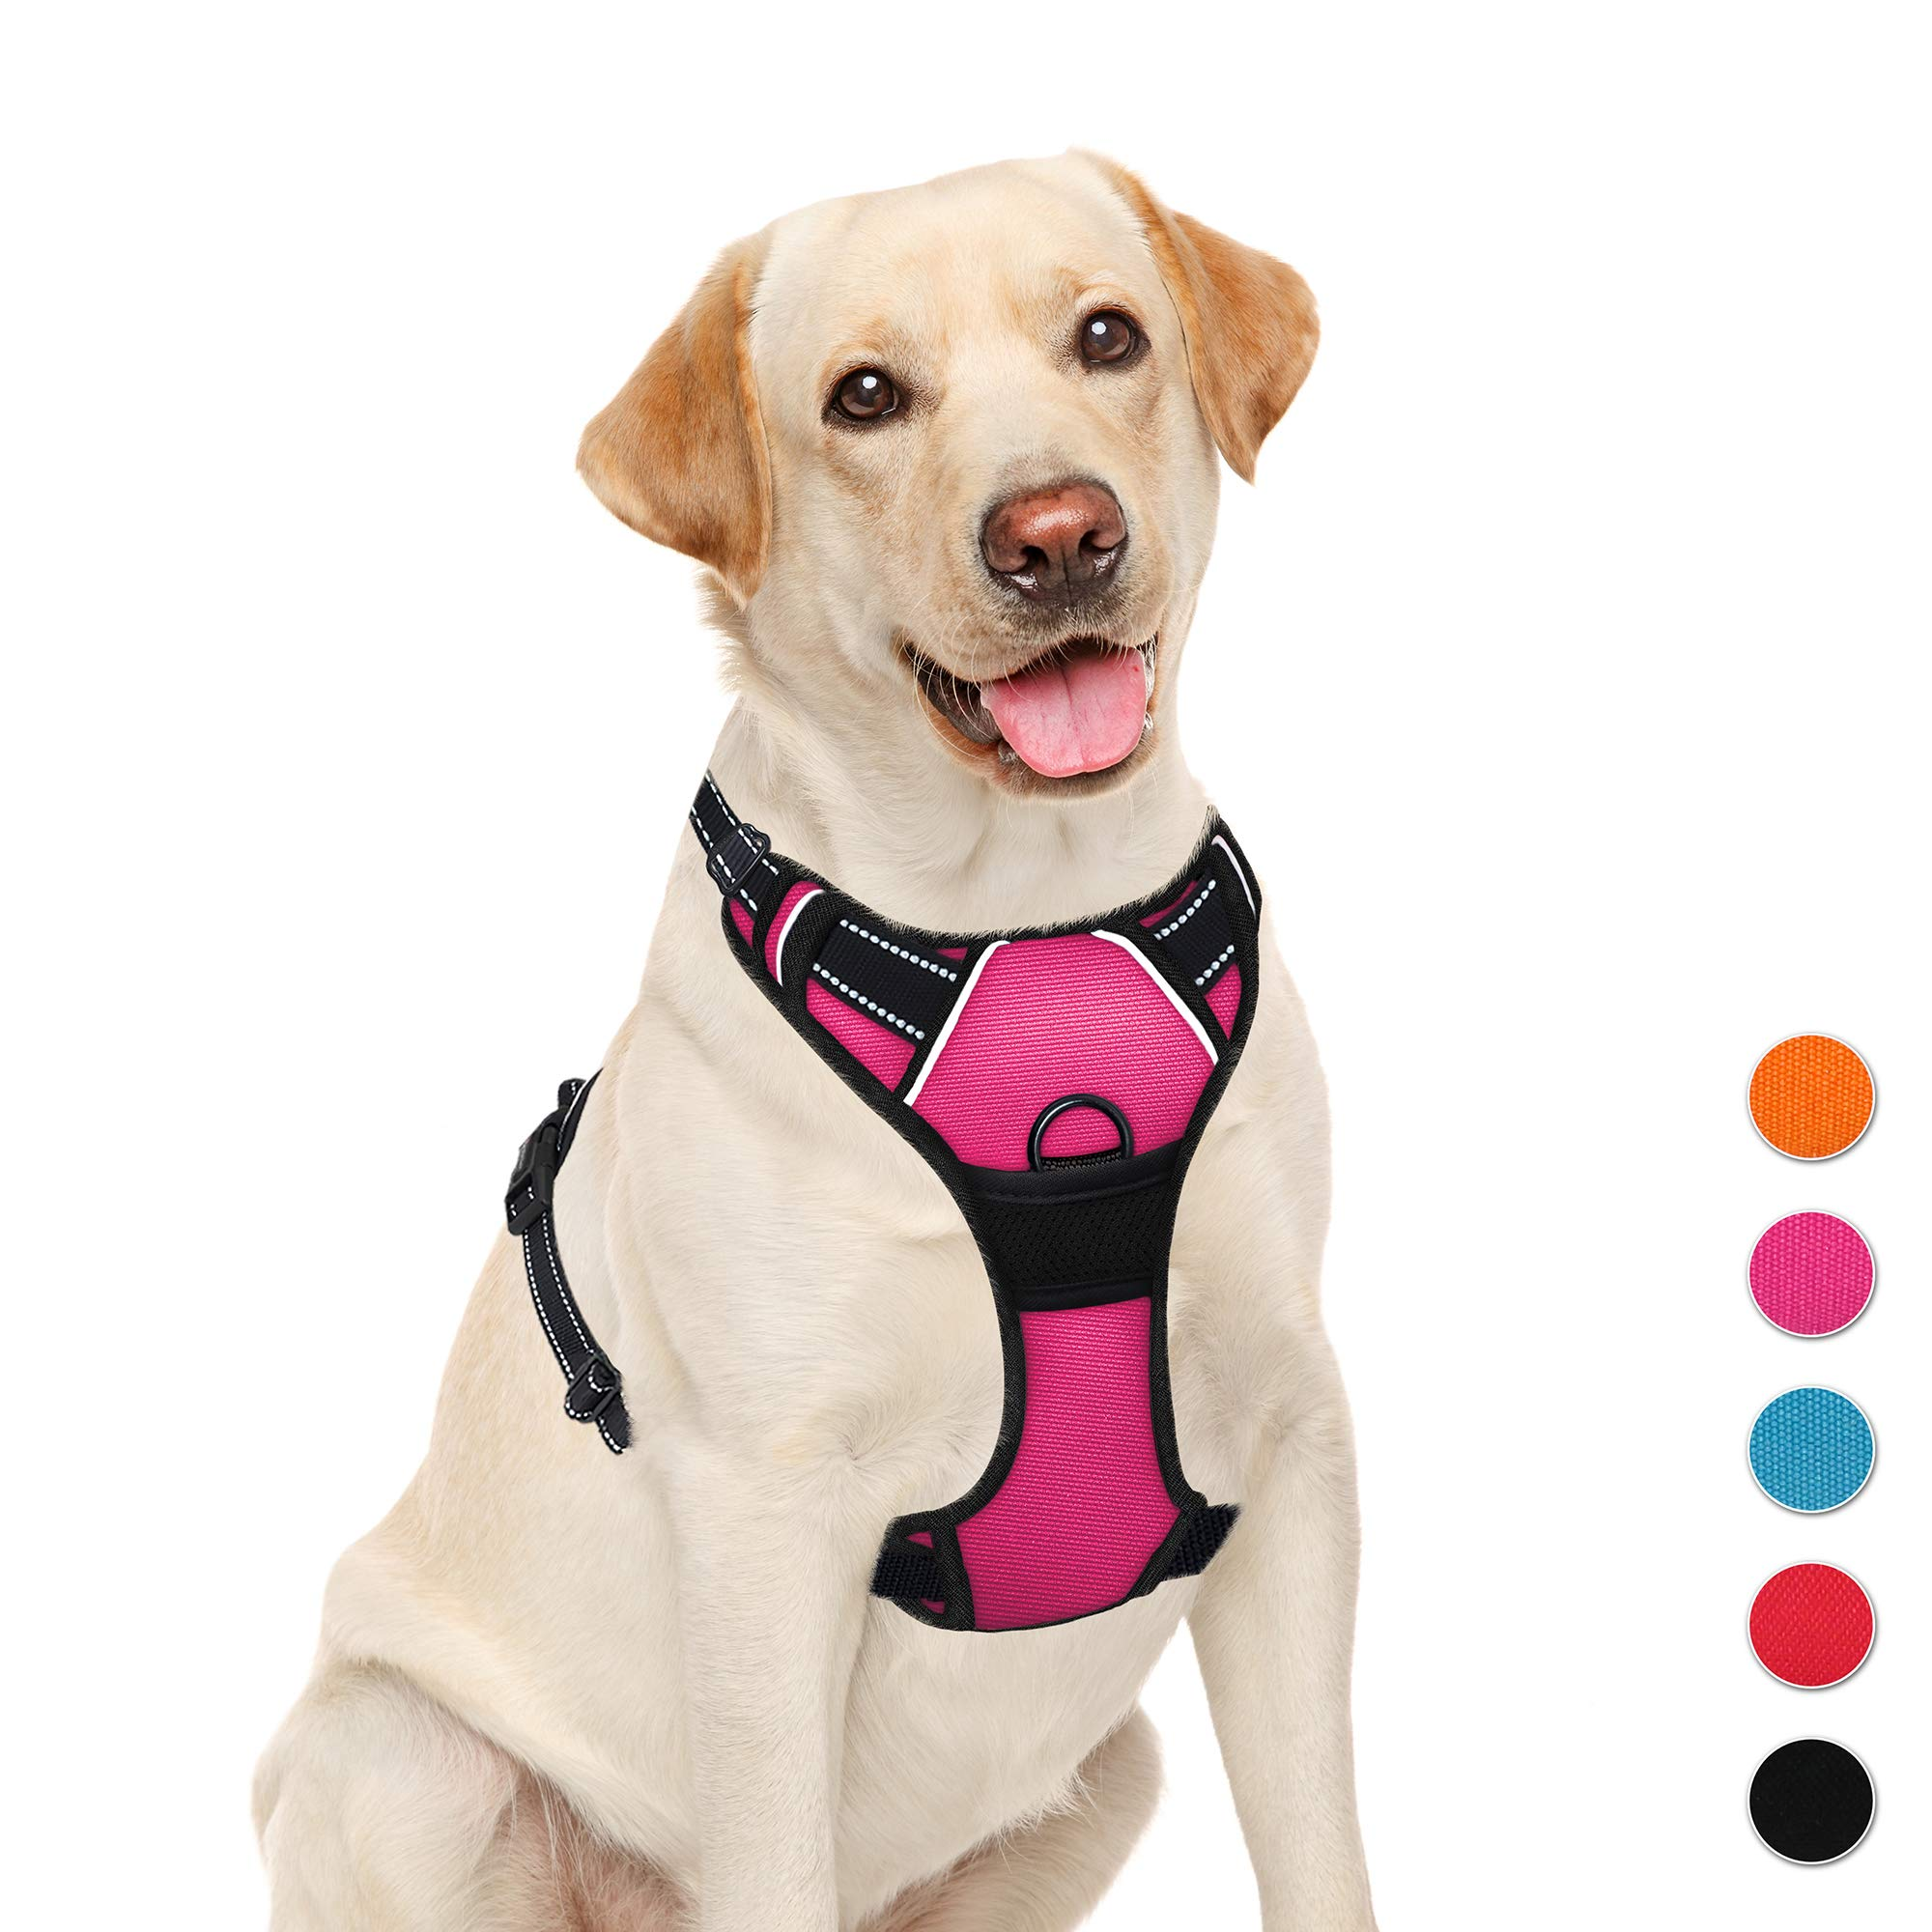 BARKBAY No Pull Pet Harness  Dog Harness Adjustable Outdoor Pet Vest 3M Reflective Oxford Material Vest for PINK Dogs Easy Control for Small Medium Large Dogs (L) by BARKBAY